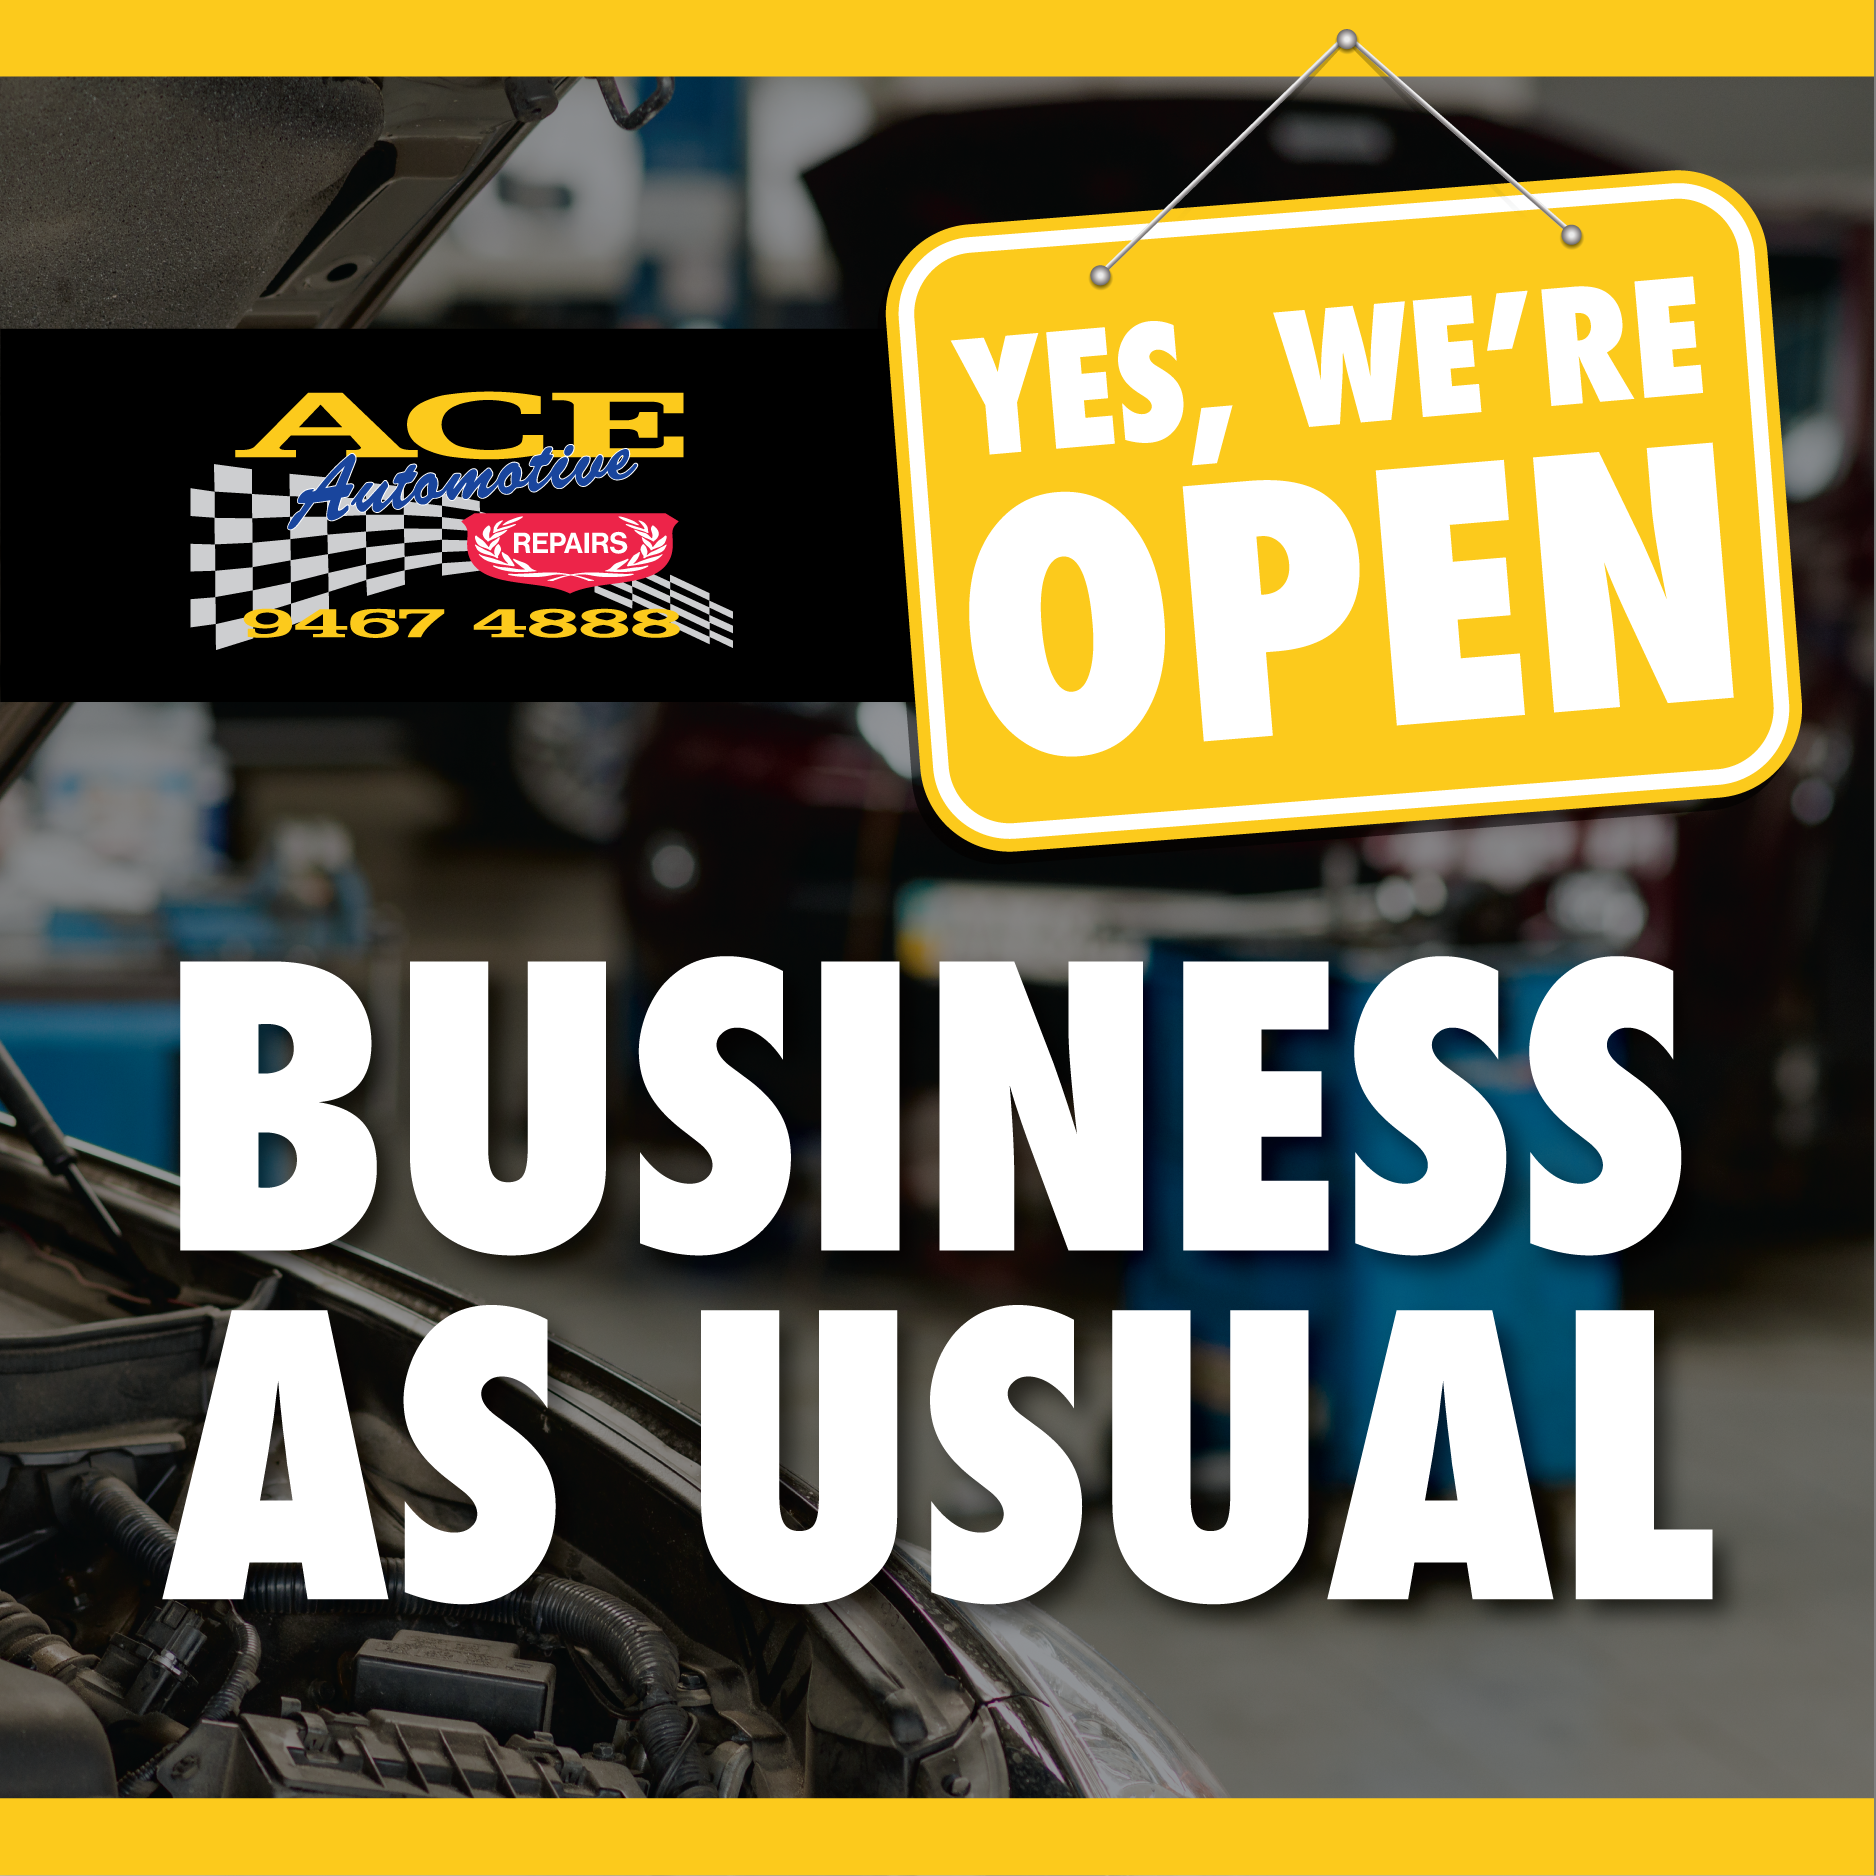 Home - image AceAutomotive_BusinessAsUsual on http://www.aceautomotive.com.au